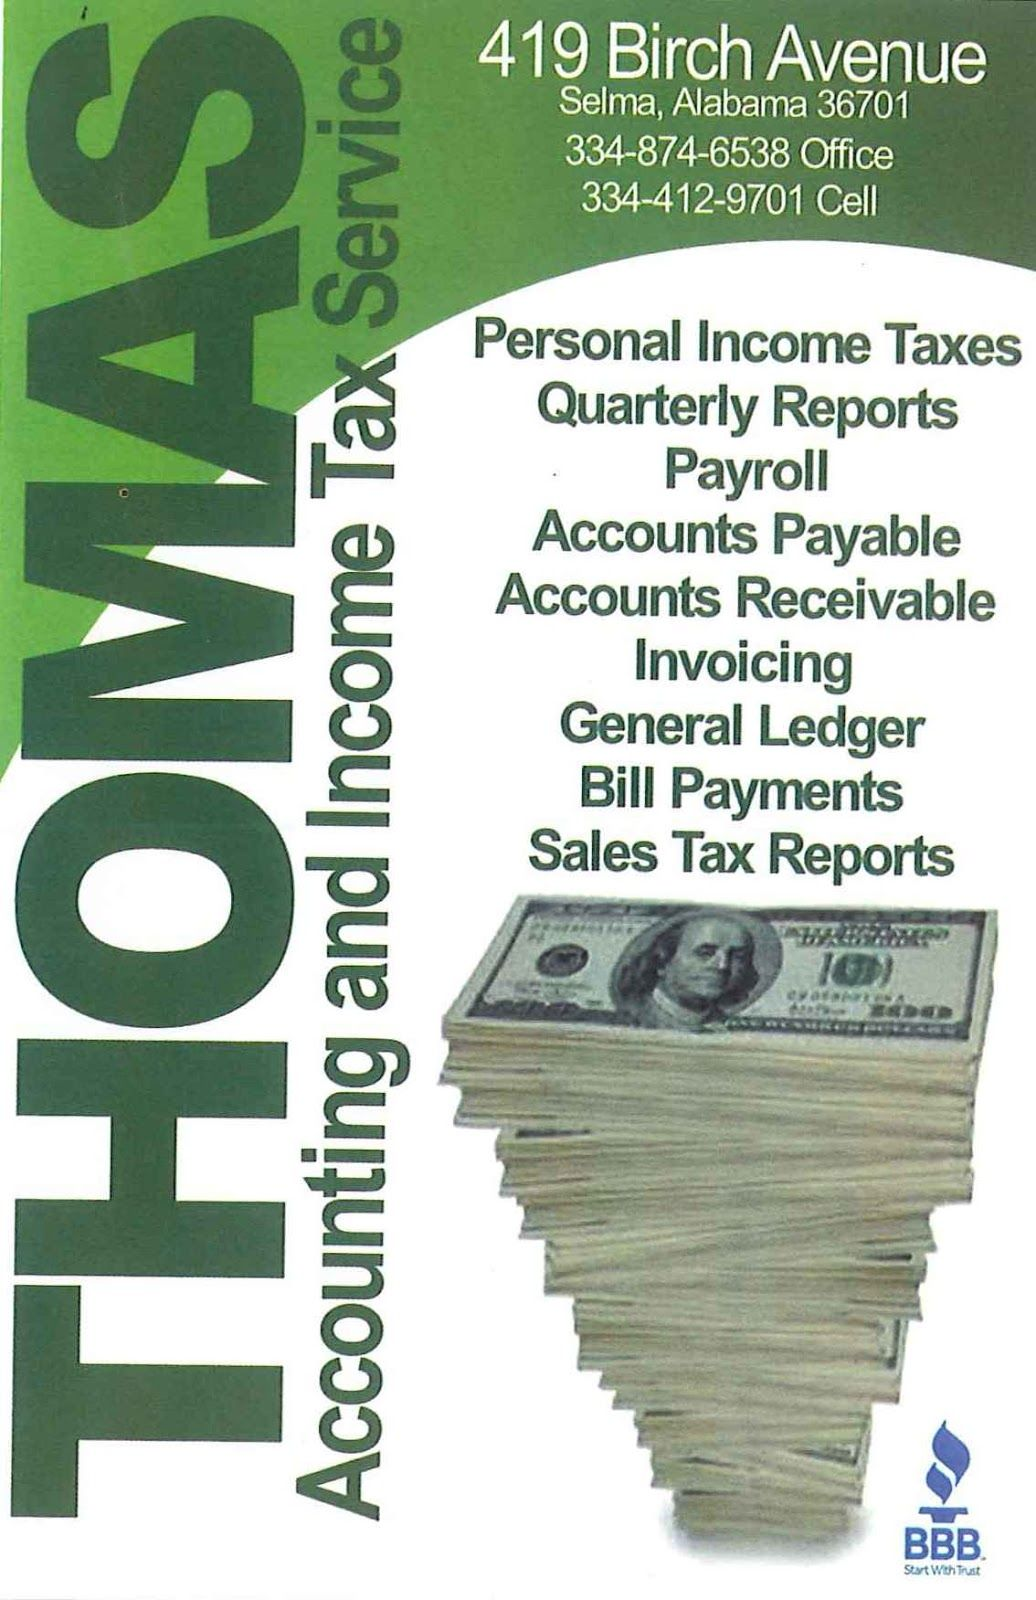 Thomas Accounting And Income Tax Service